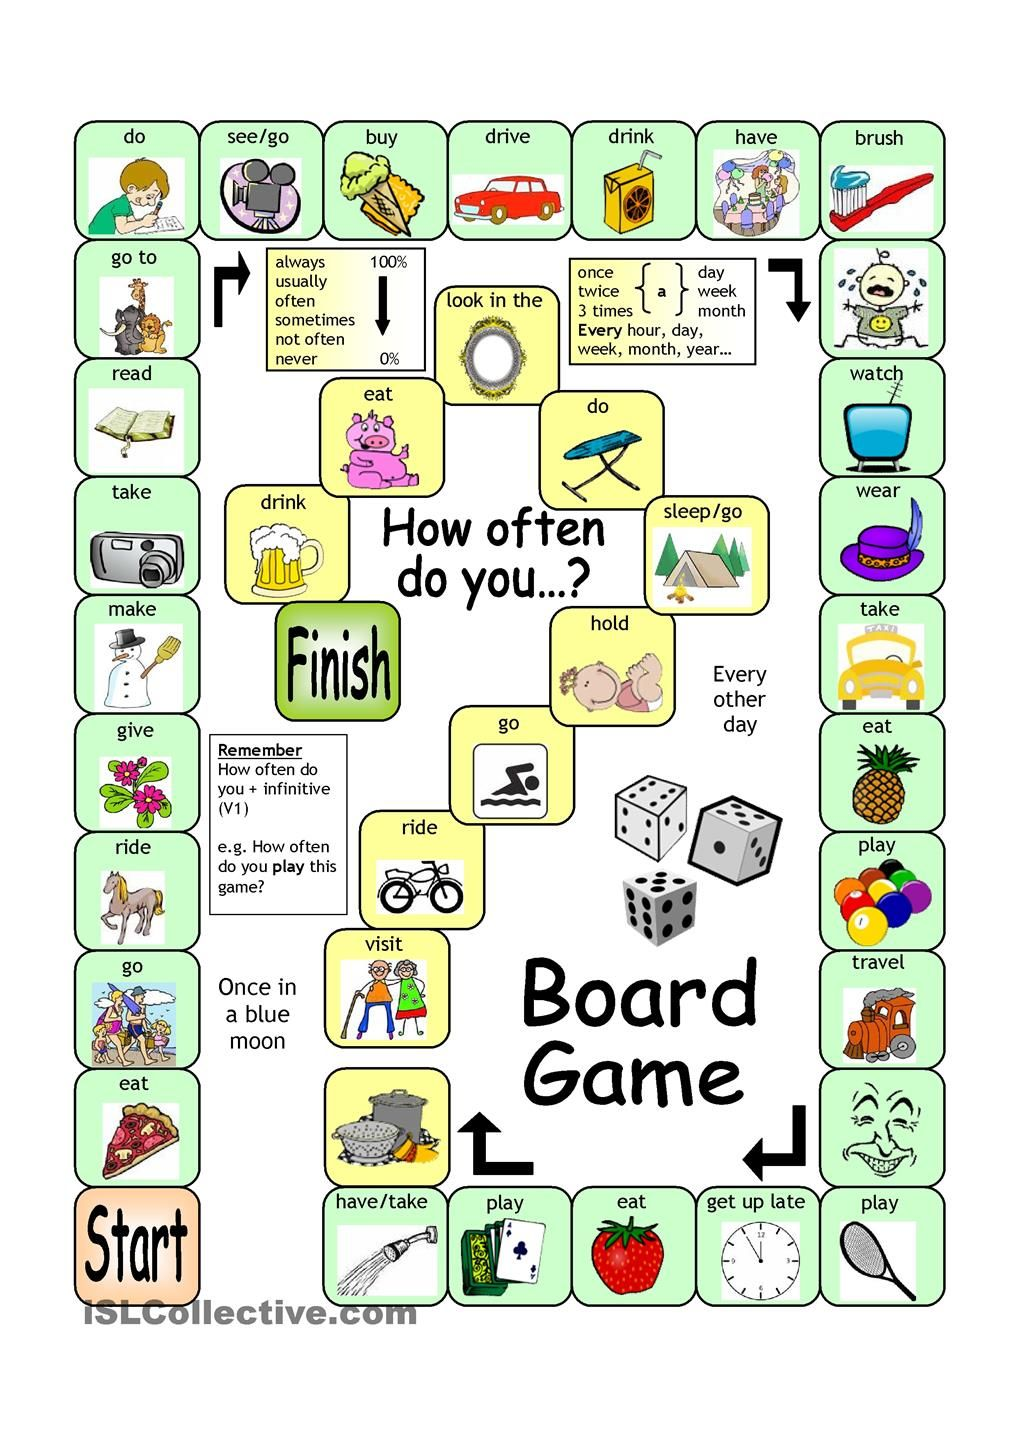 Worksheet Adverb Games For Kids pinterest the worlds catalog of ideas board game how often